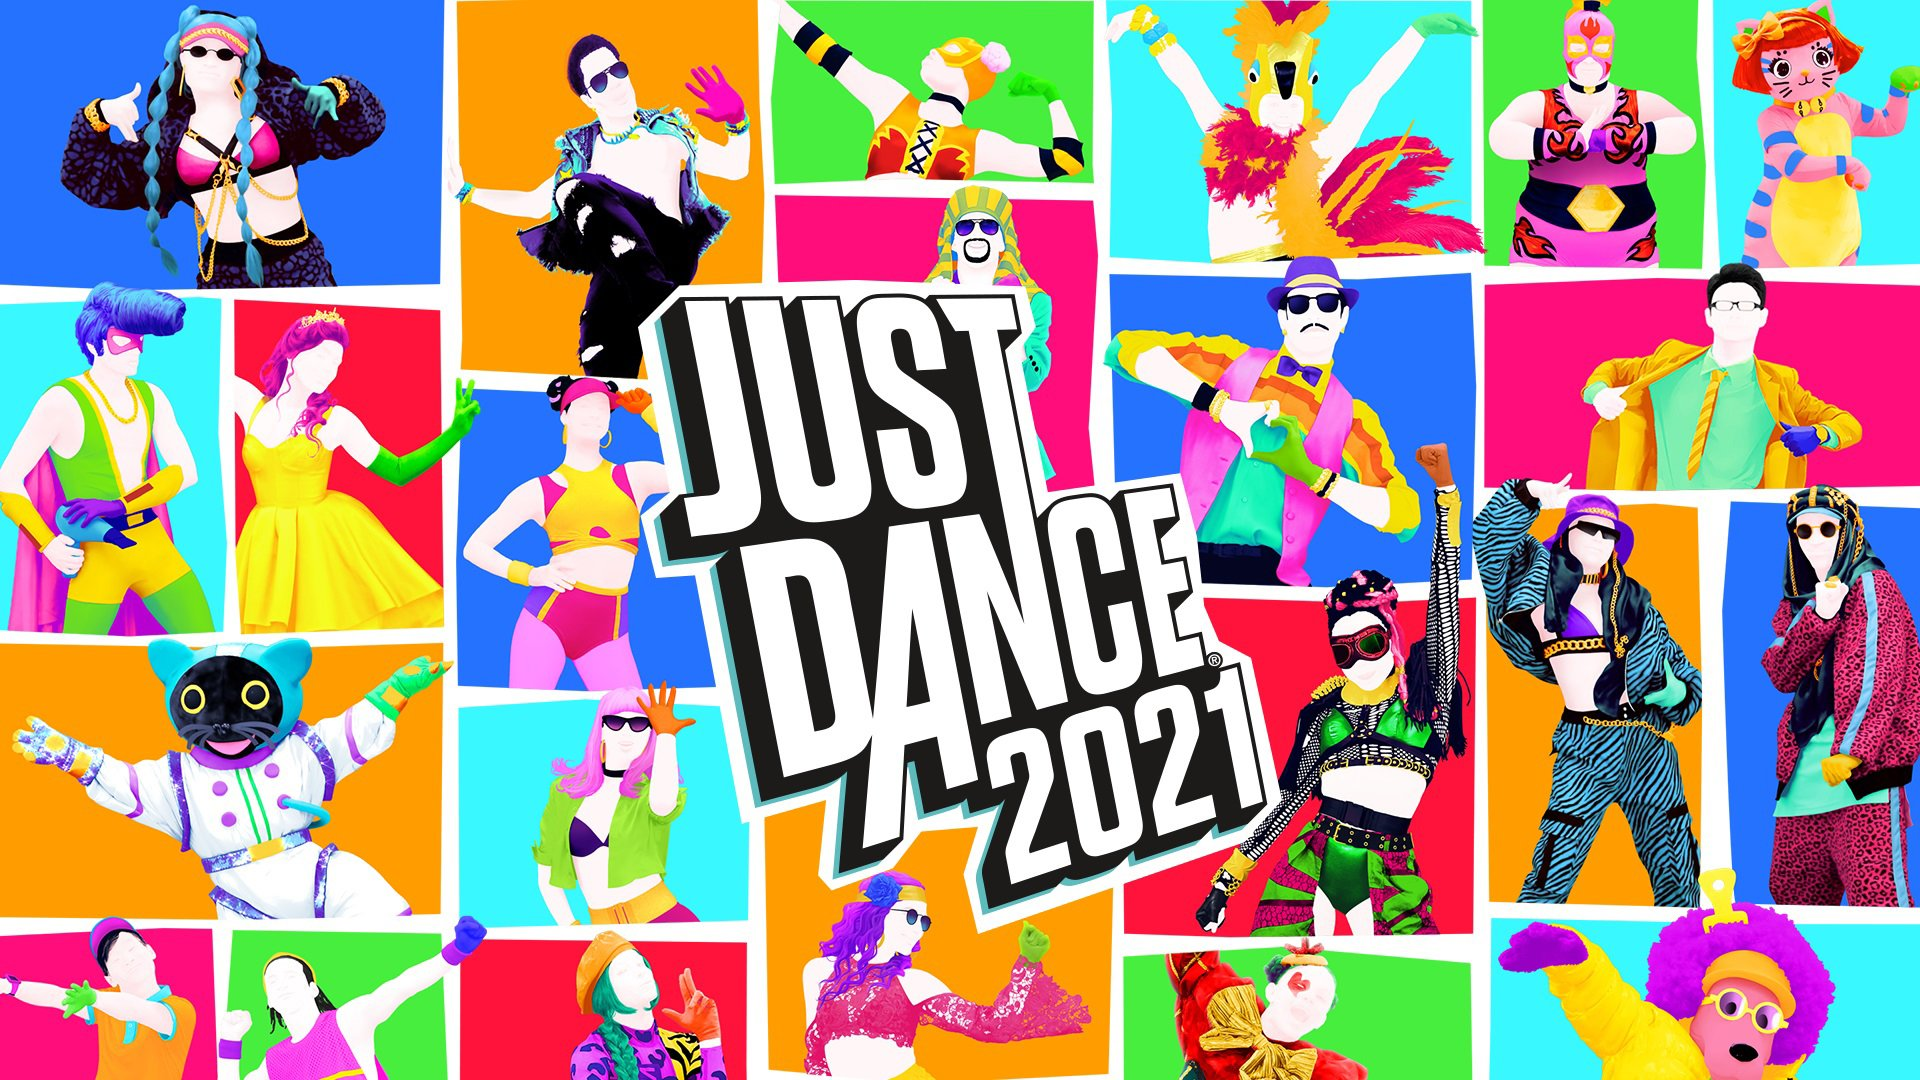 Just Dance 2021 won't be on the Wii for the first time